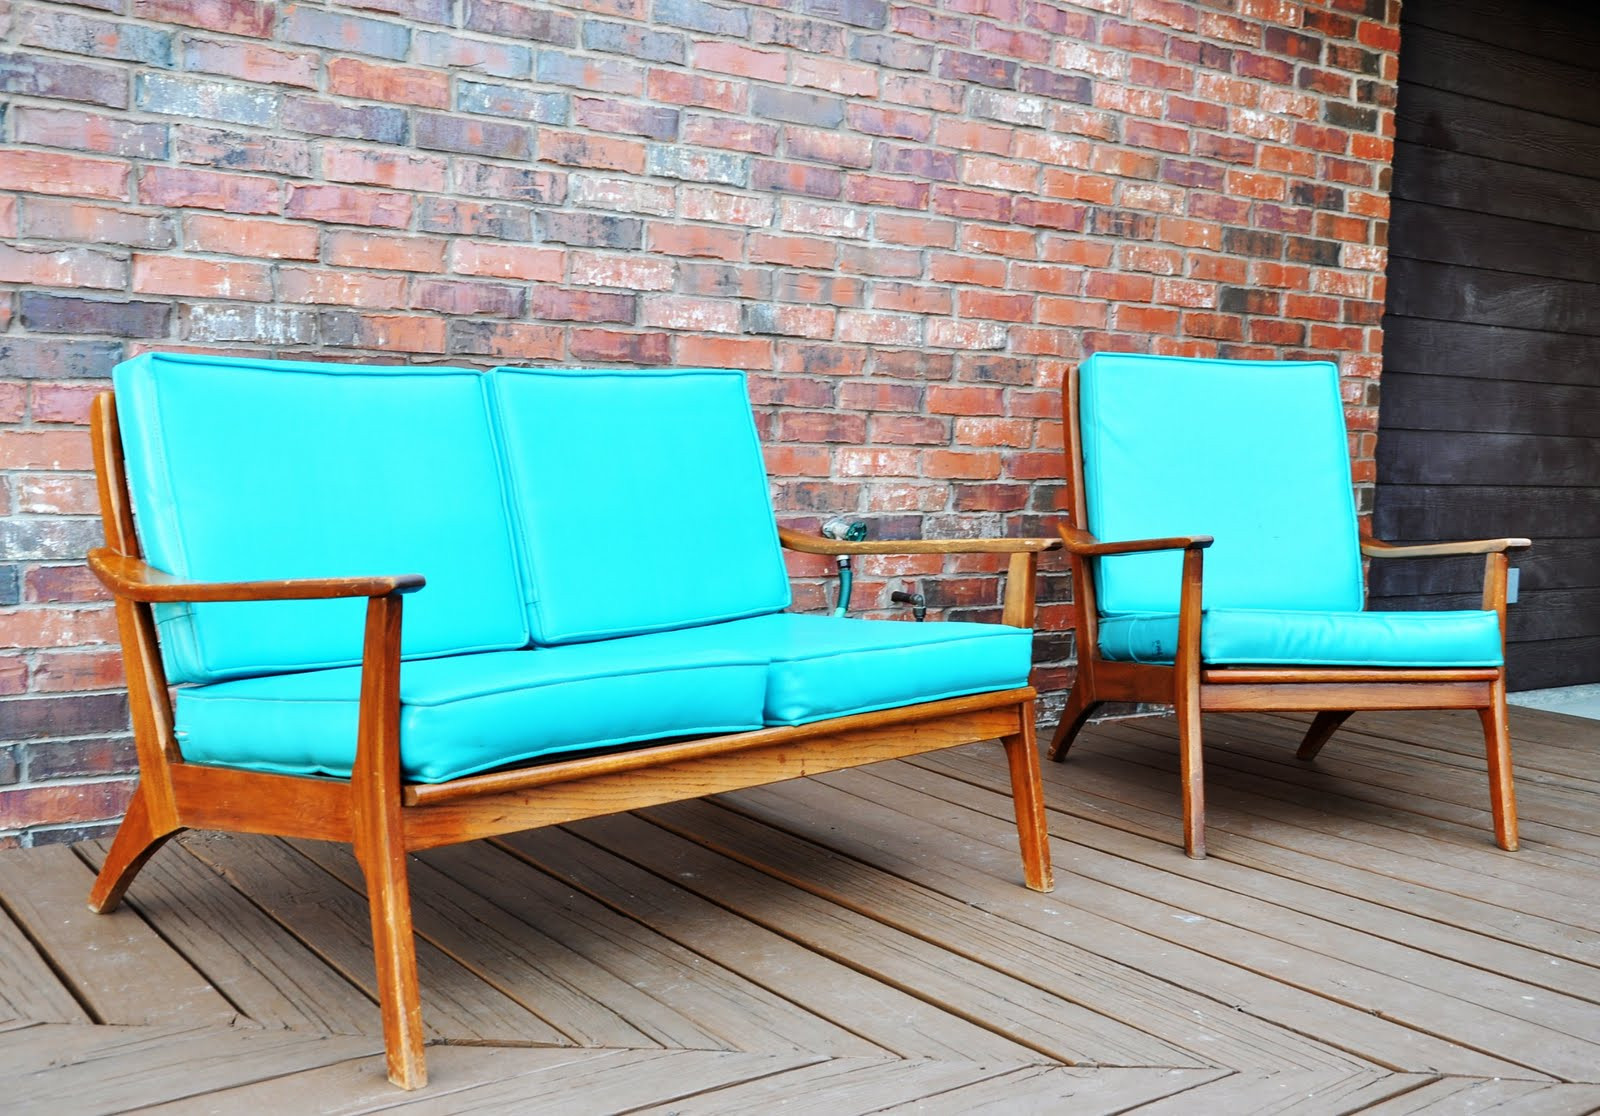 Best ideas about Retro Patio Furniture . Save or Pin Sarah s Loves Thrifting Thursdays Retro Patio Furniture Now.